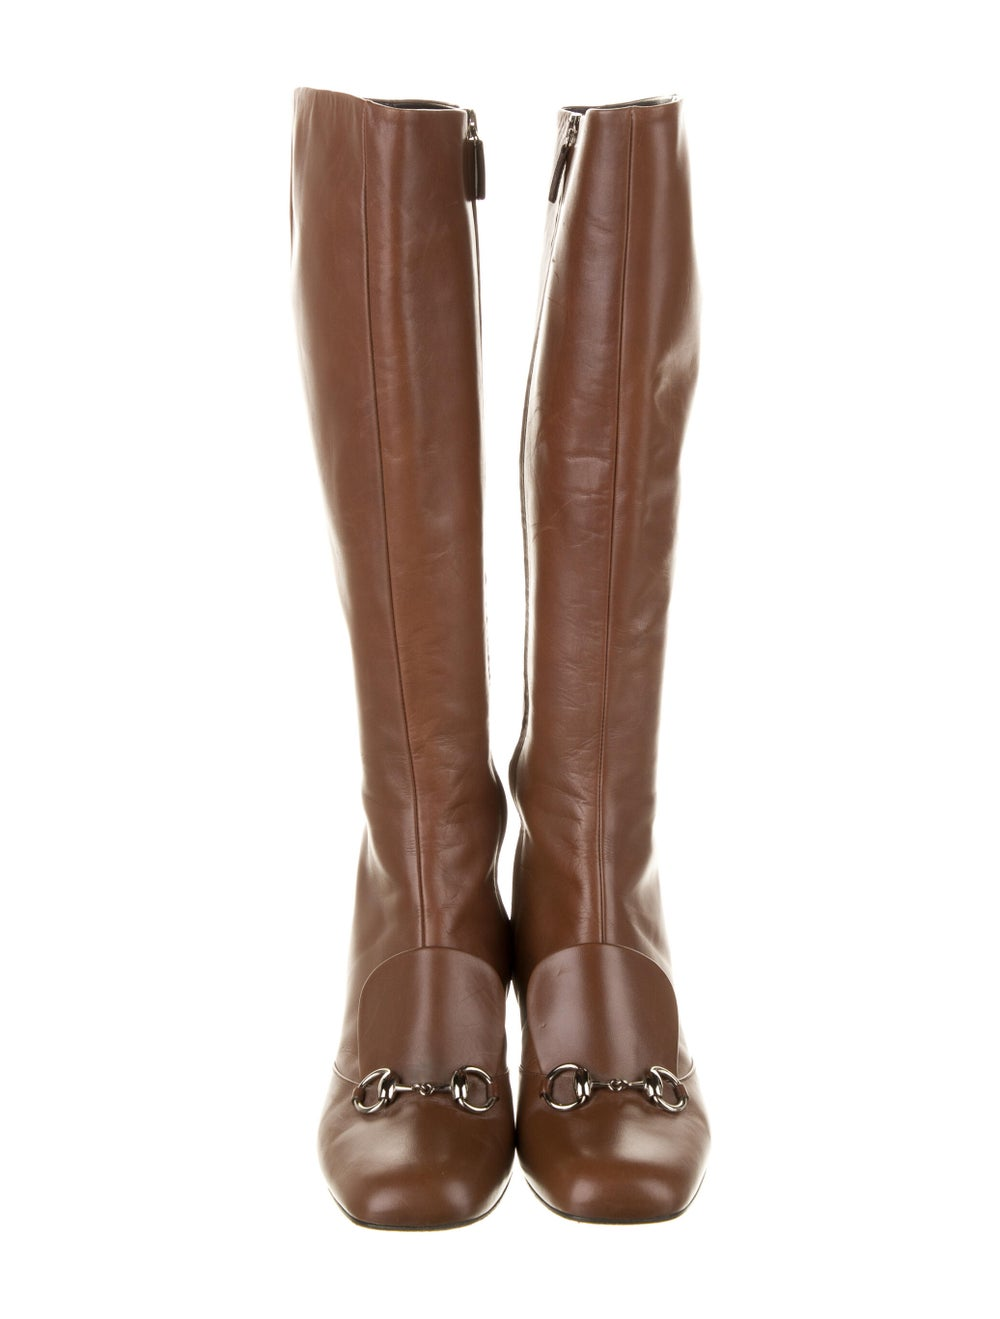 Gucci Horsebit Accent Leather Riding Boots Brown - image 3